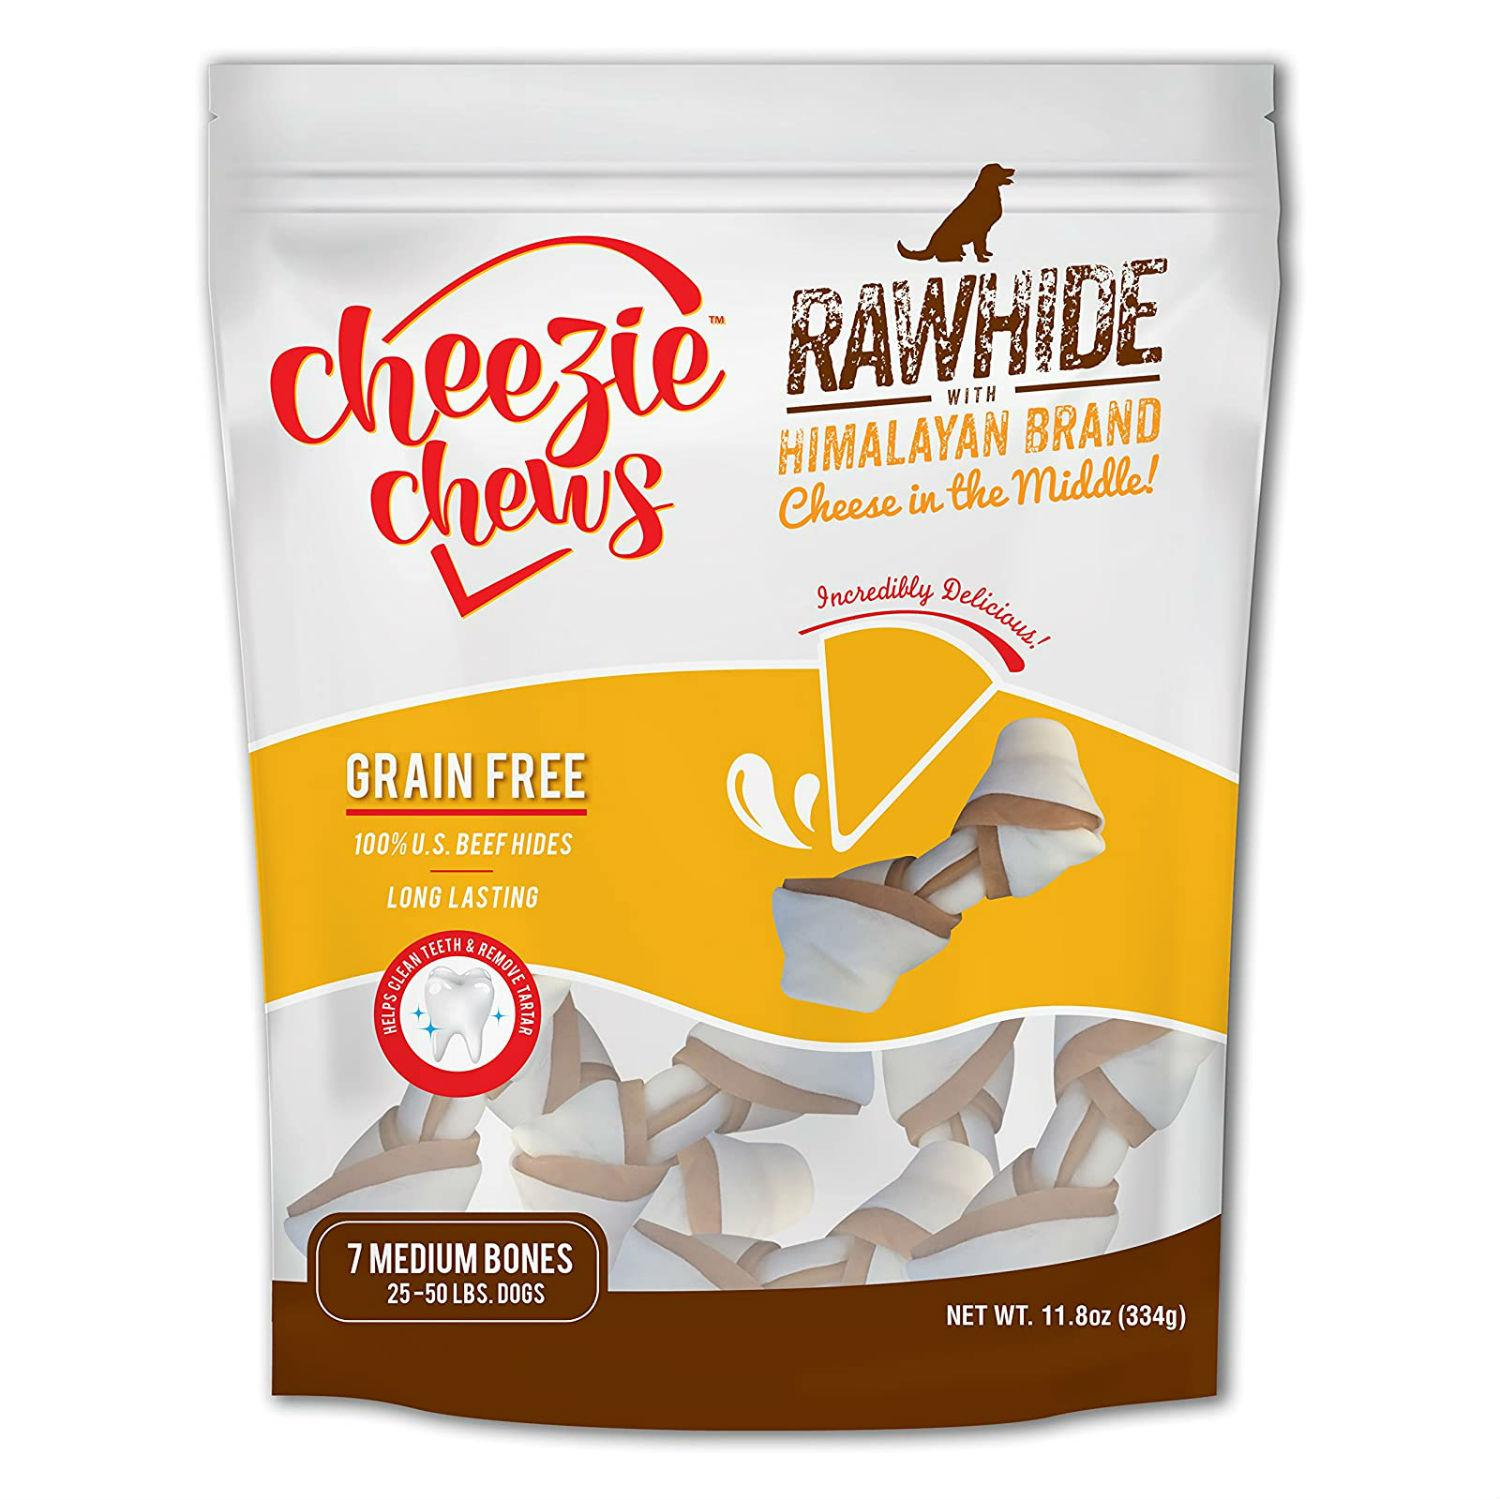 Cheezie Chews Knotted Rawhide with Himalayan Brand Cheese Chews Dog Treat - Medium